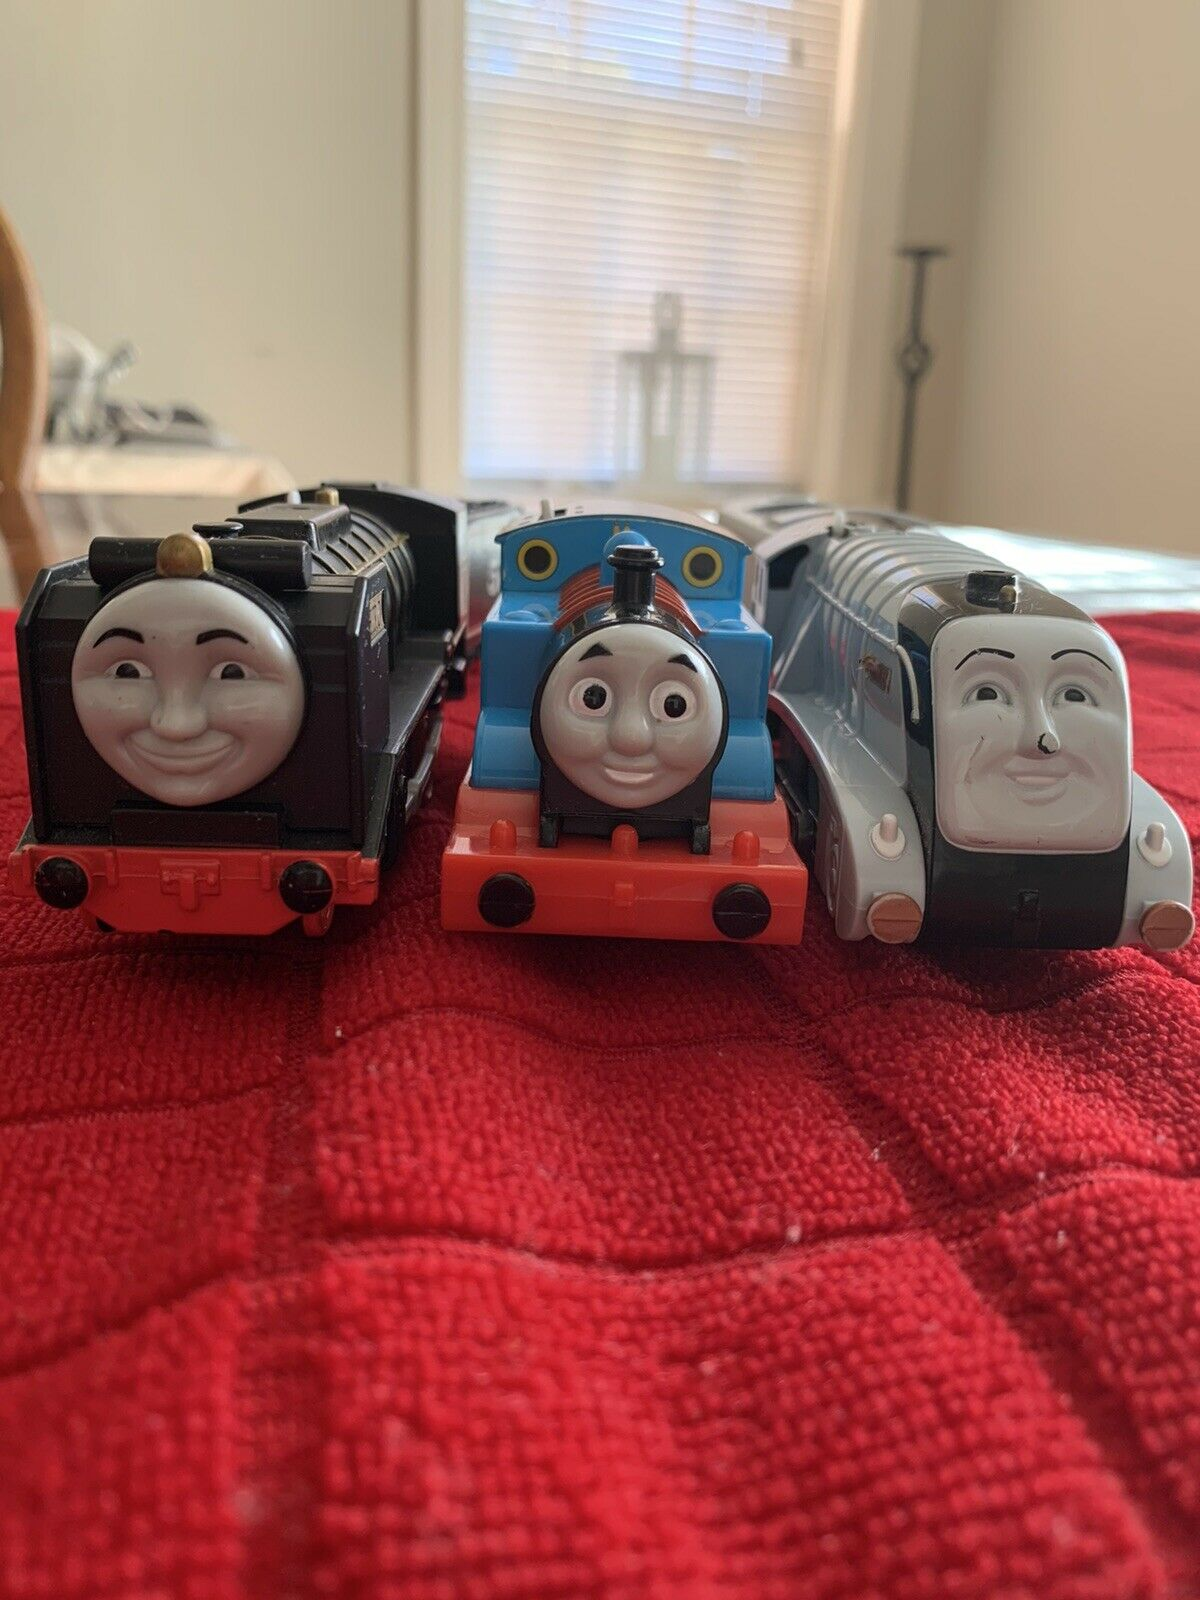 Tomy Trackmaster Lorry LOR1 Thomas The Tank Engine And Friends motorisé Véhicule